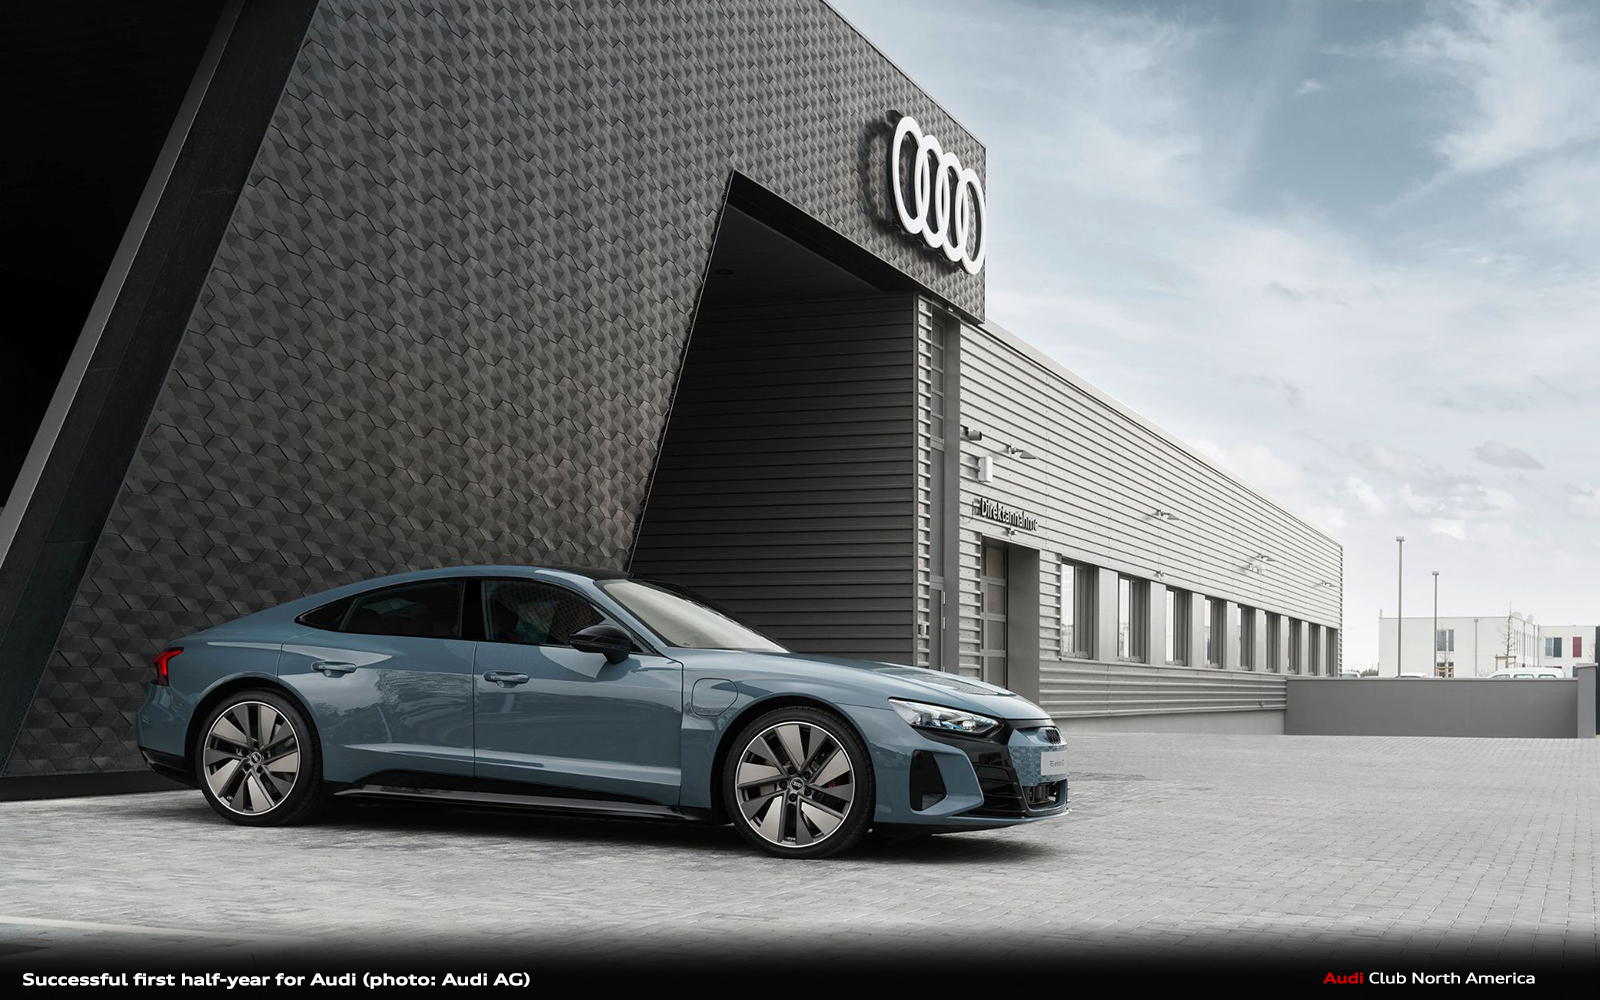 Successful First Half-Year for Audi: Record Deliveries and Strong Profits